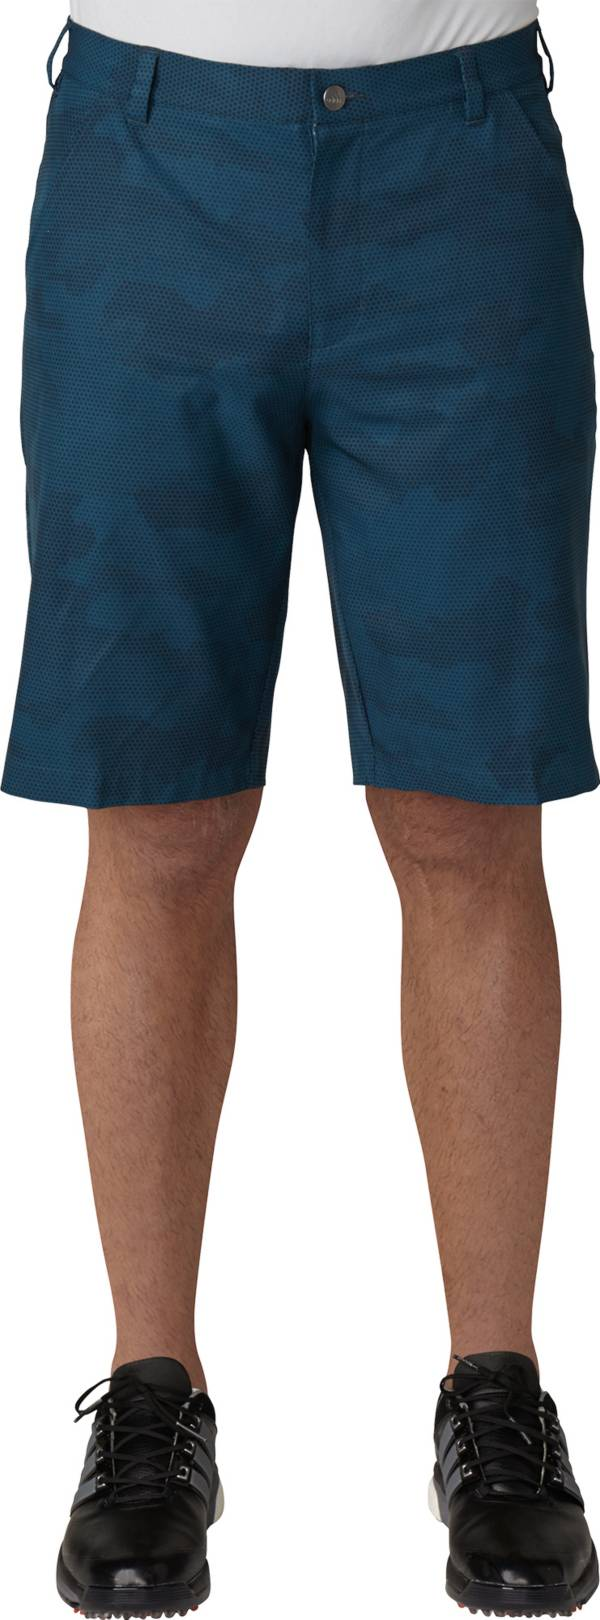 adidas Ultimate Camo Print Shorts product image